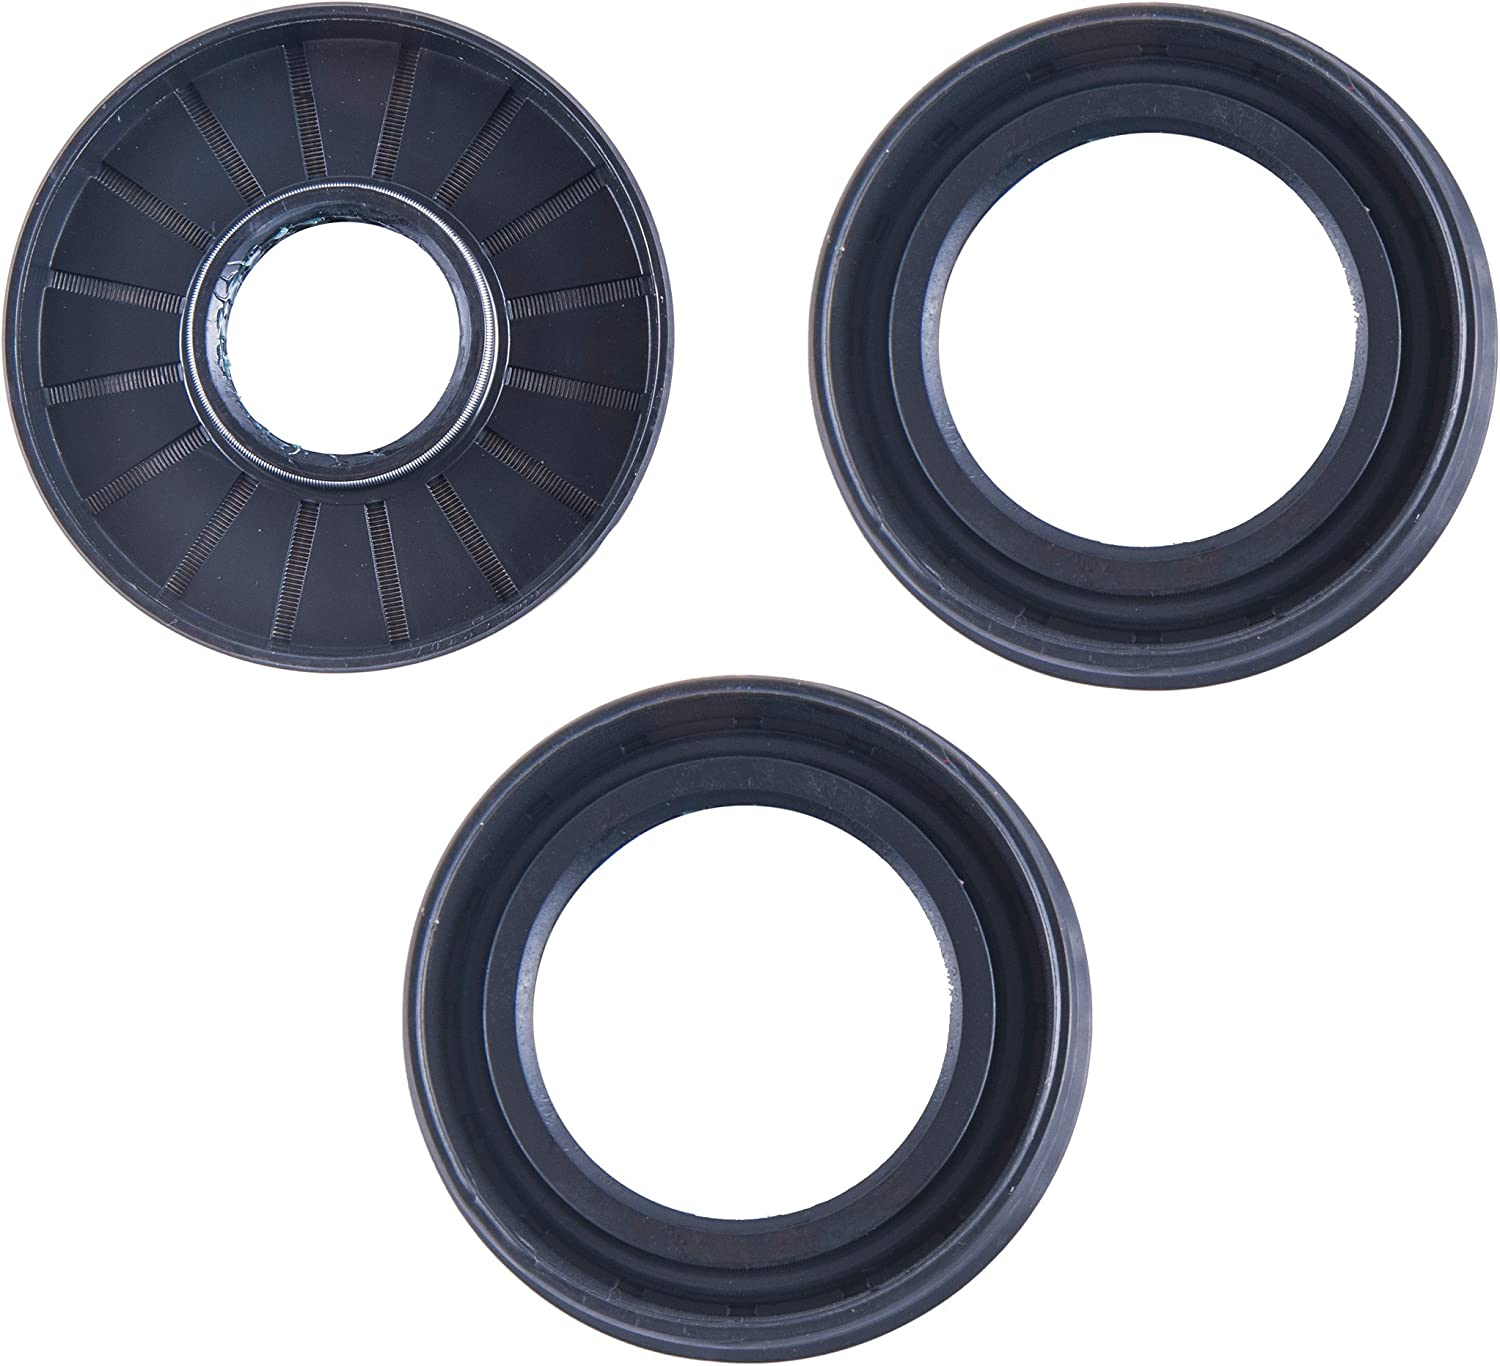 East Lake Axle rear cv axles /& differential seal kit compatible with Polaris RZR 800 S//4 60 2009 2010 2011 2012 2013 2014